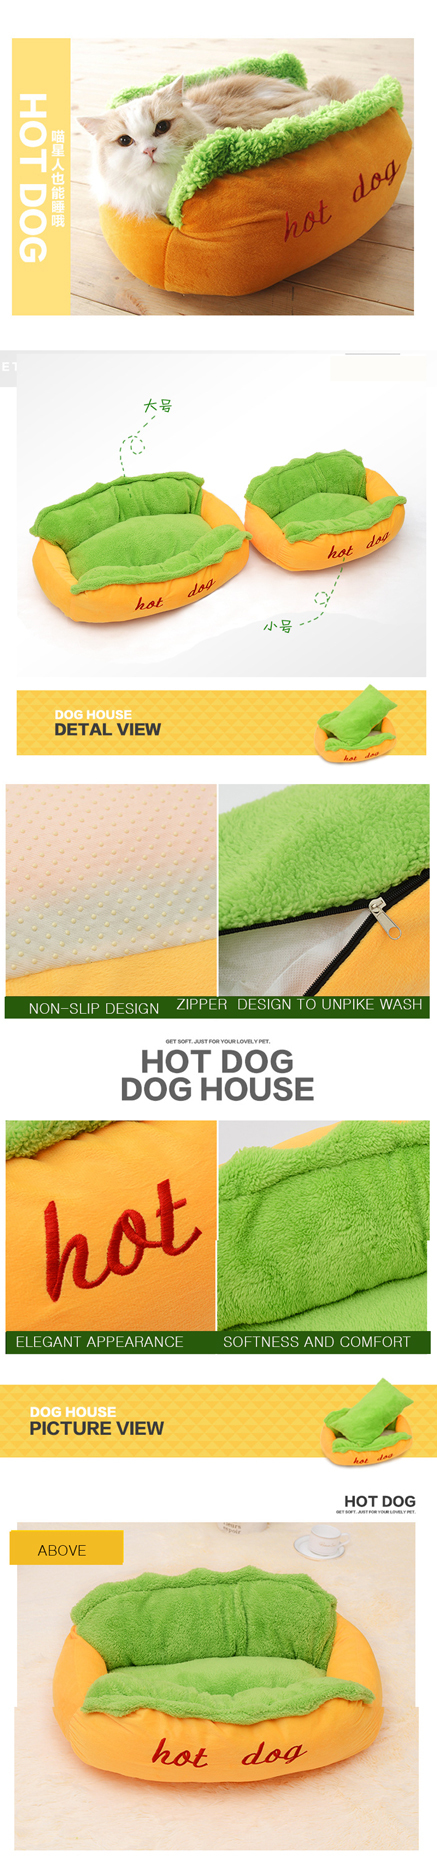 Hot Dog Bed Pet Cute Dog Beds For Small Dogs Warm Cat Sofa Cushion Soft Pet Sleeping Bag Pet Mat Funny Hot Dog Cushion 12